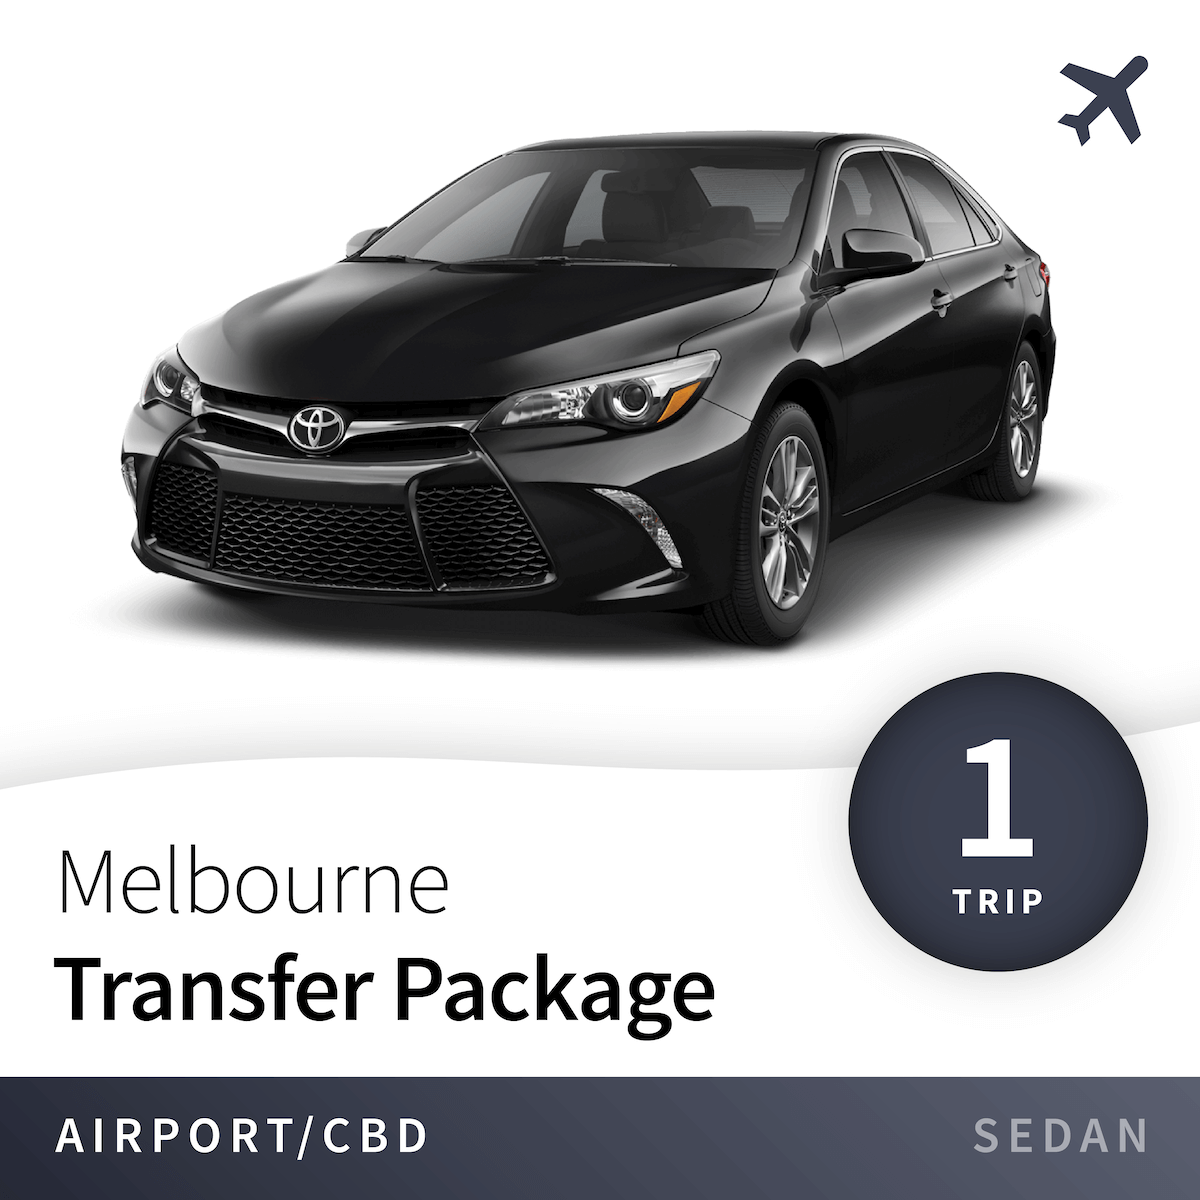 Melbourne Airport Transfer Package - Sedan (1 Trip) 11